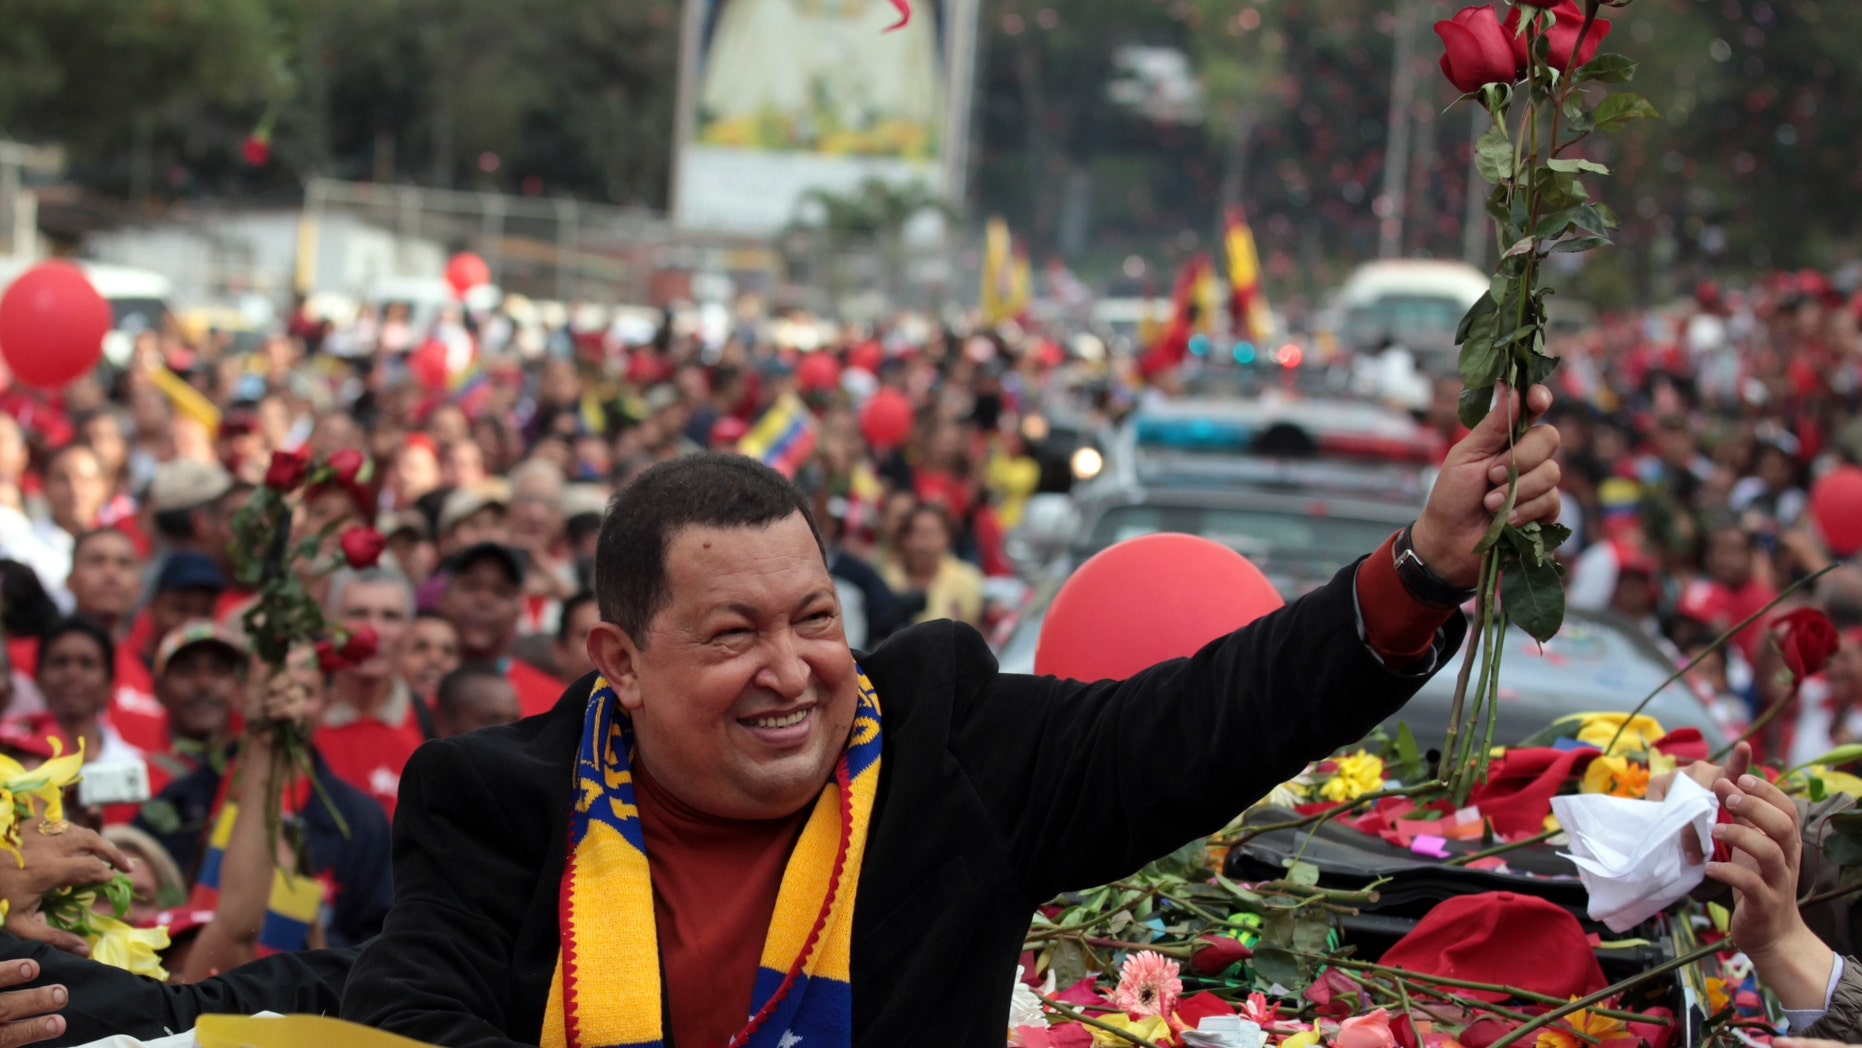 Venezuela's President Hugo Chavez holds up flowers thrown by supporters during his caravan from Miraflores presidential palace to the airport in Caracas, Venezuela, Friday Feb. 24, 2012. (AP Photo/Fernando Llano)